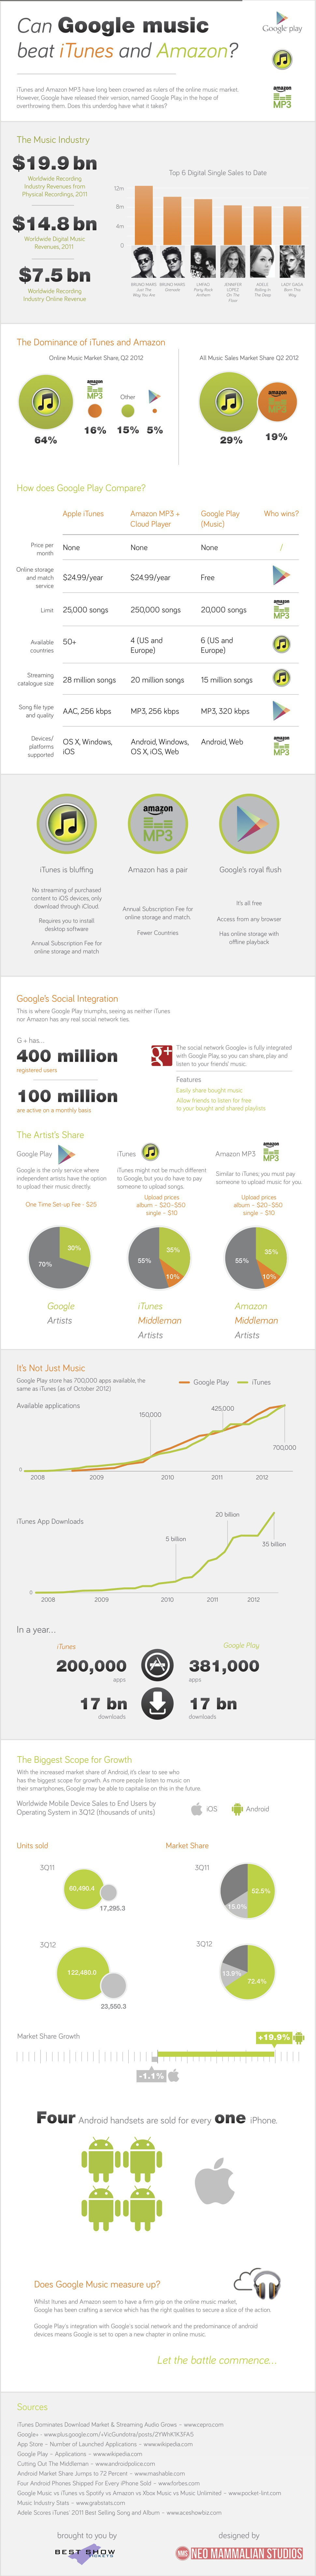 Can Google Play beat iTunes and Amazon?